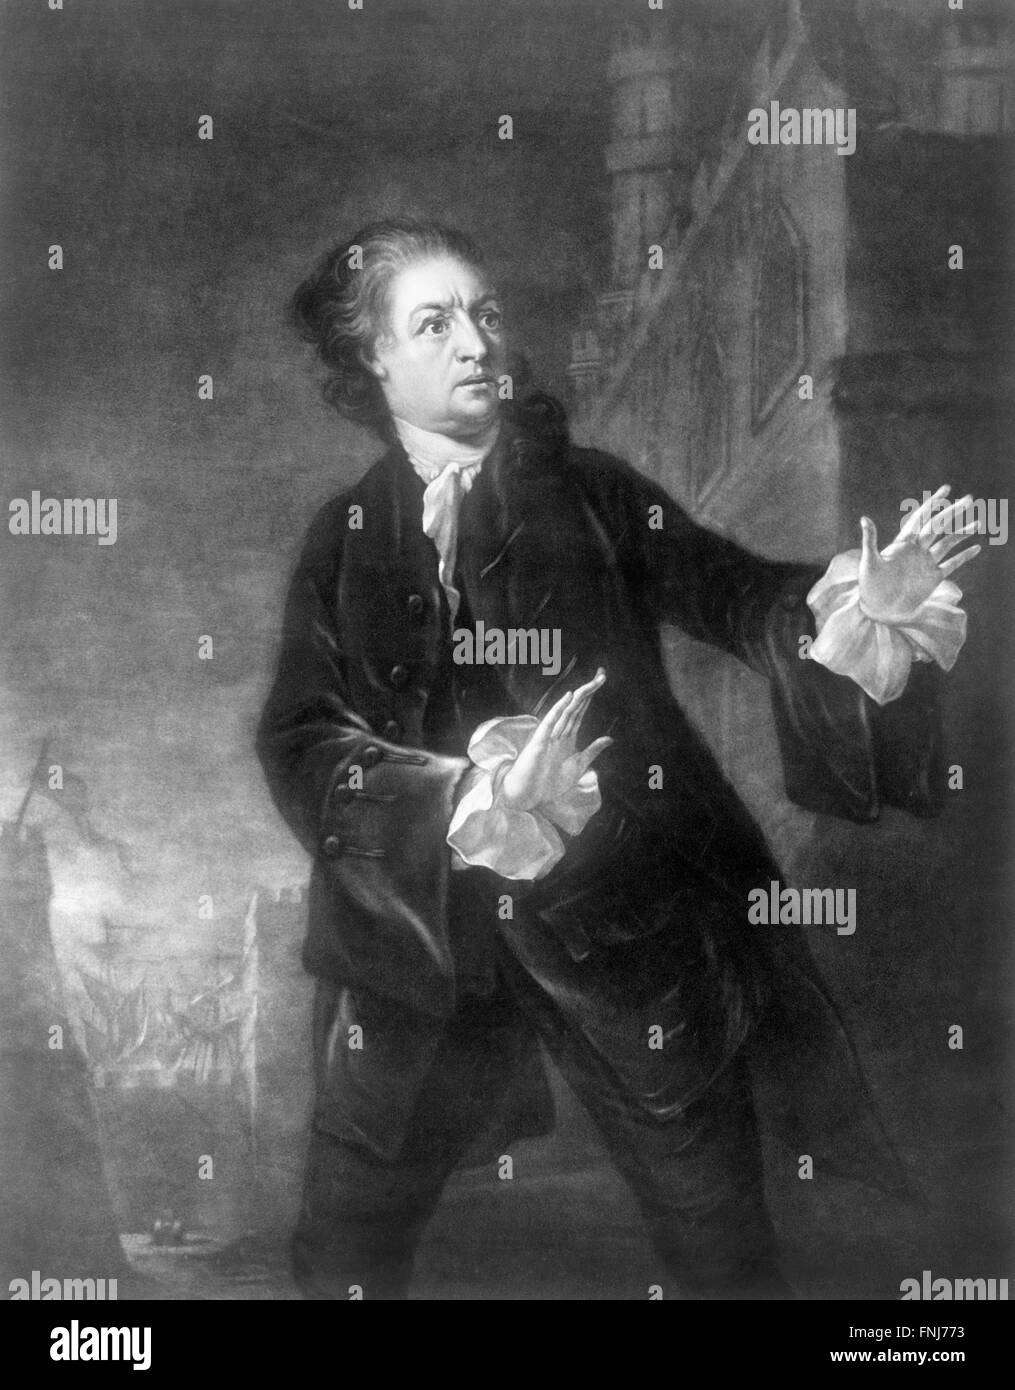 The 18thC actor, playwright and theatre manager, David Garrick, in the role of Hamlet. Engraving by James McArdell - Stock Image